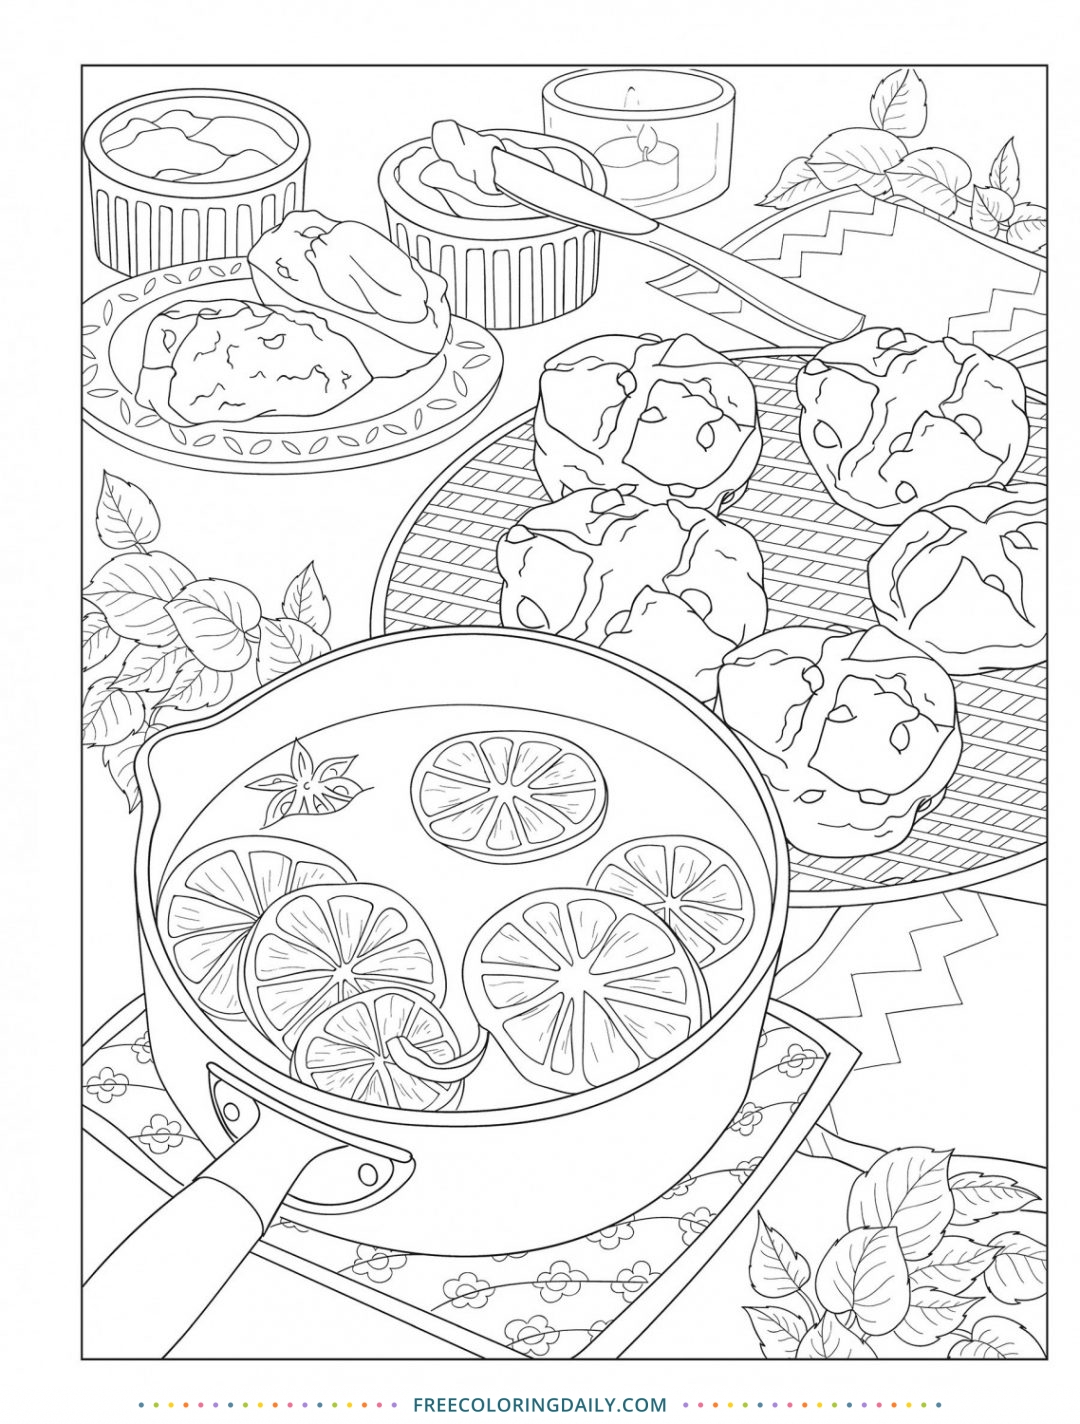 Free Baking Coloring Page